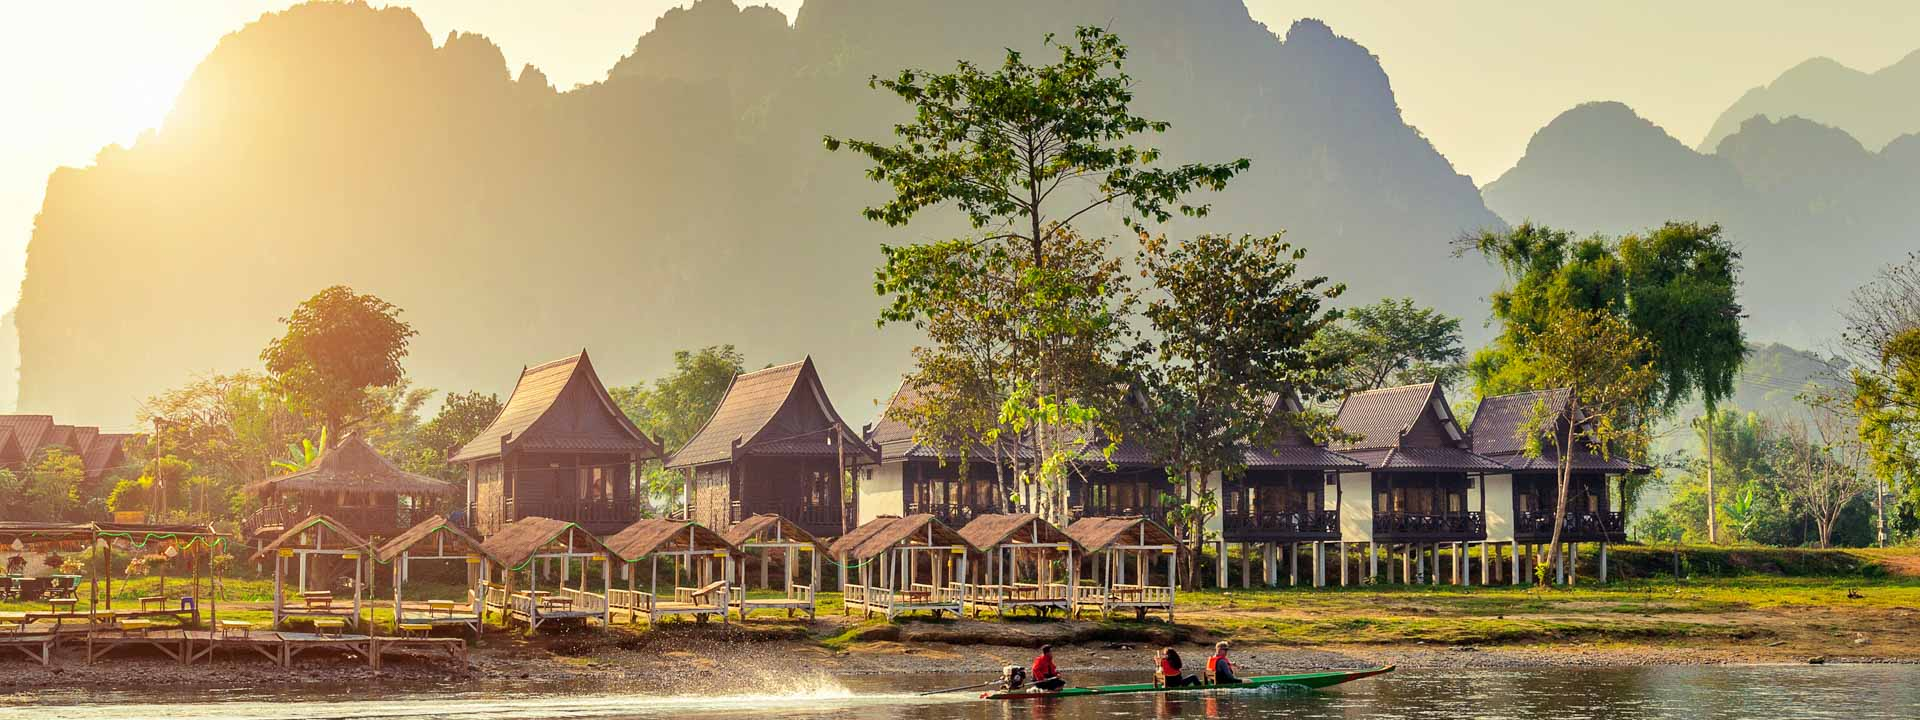 Timeless wonders in Vietnam Cambodia Laos Tour 21 days